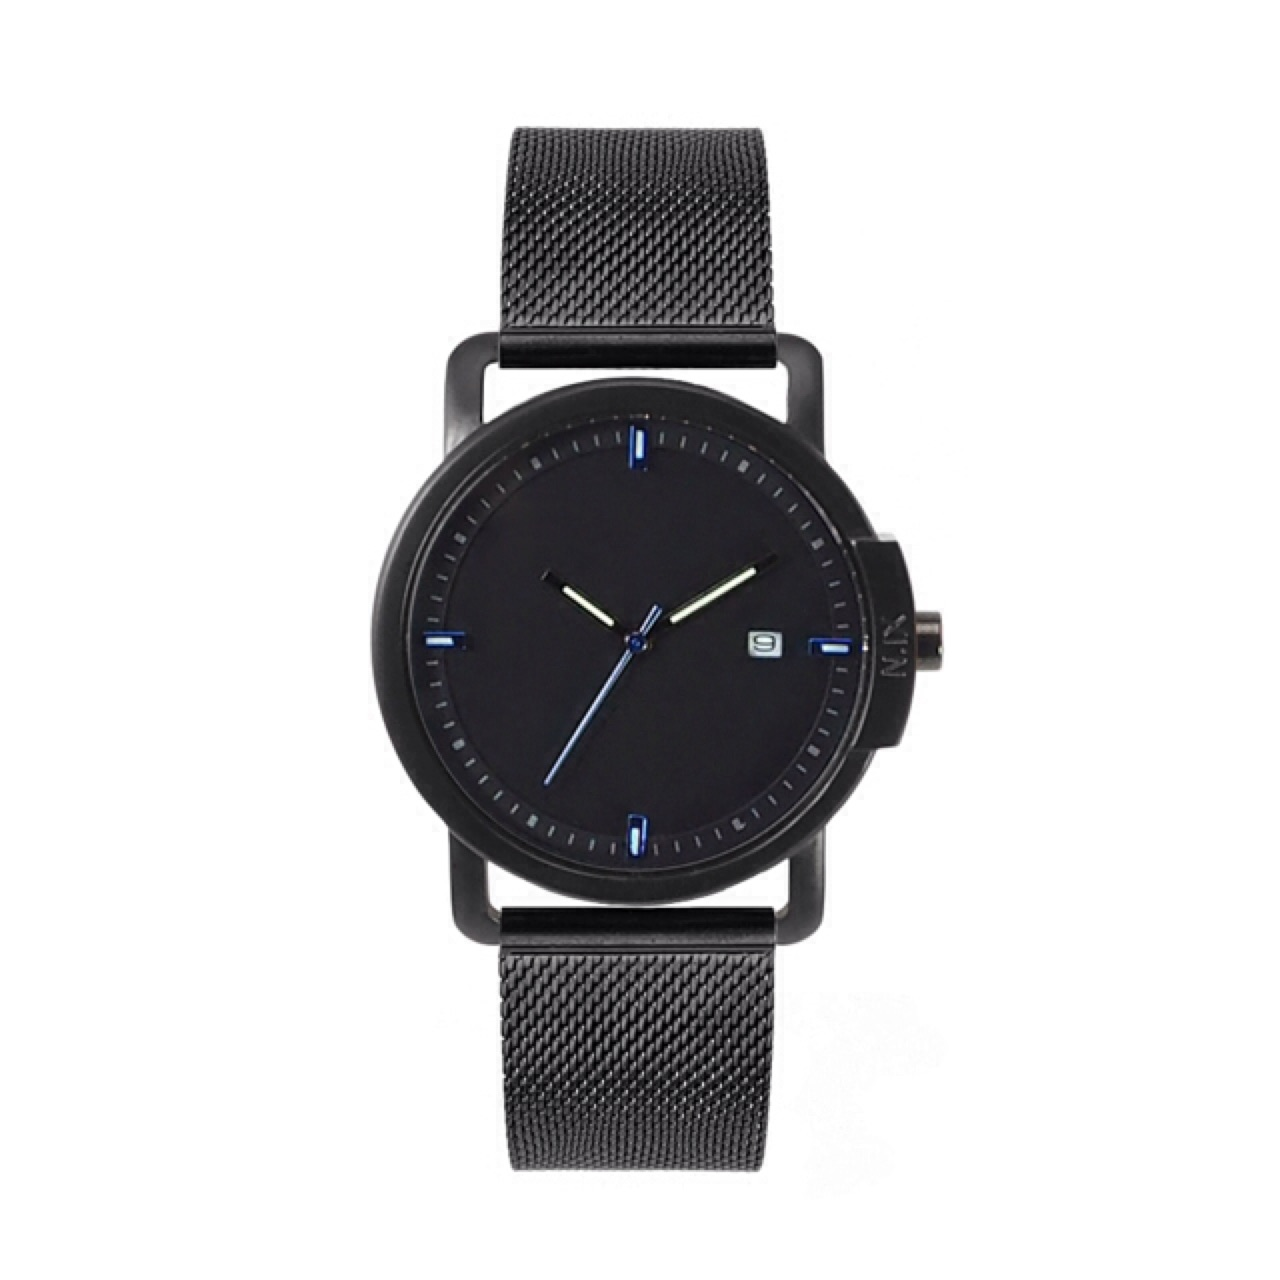 ฟรีจัดส่ง,NIXwatch,NIXstudio,OceanProject,Minimalwatches,stainless,mesh,leather,giftset,Unisex,gift,Metallic,present,black,navy,blue,นาฬิกา,นาฬิกาข้อมือ